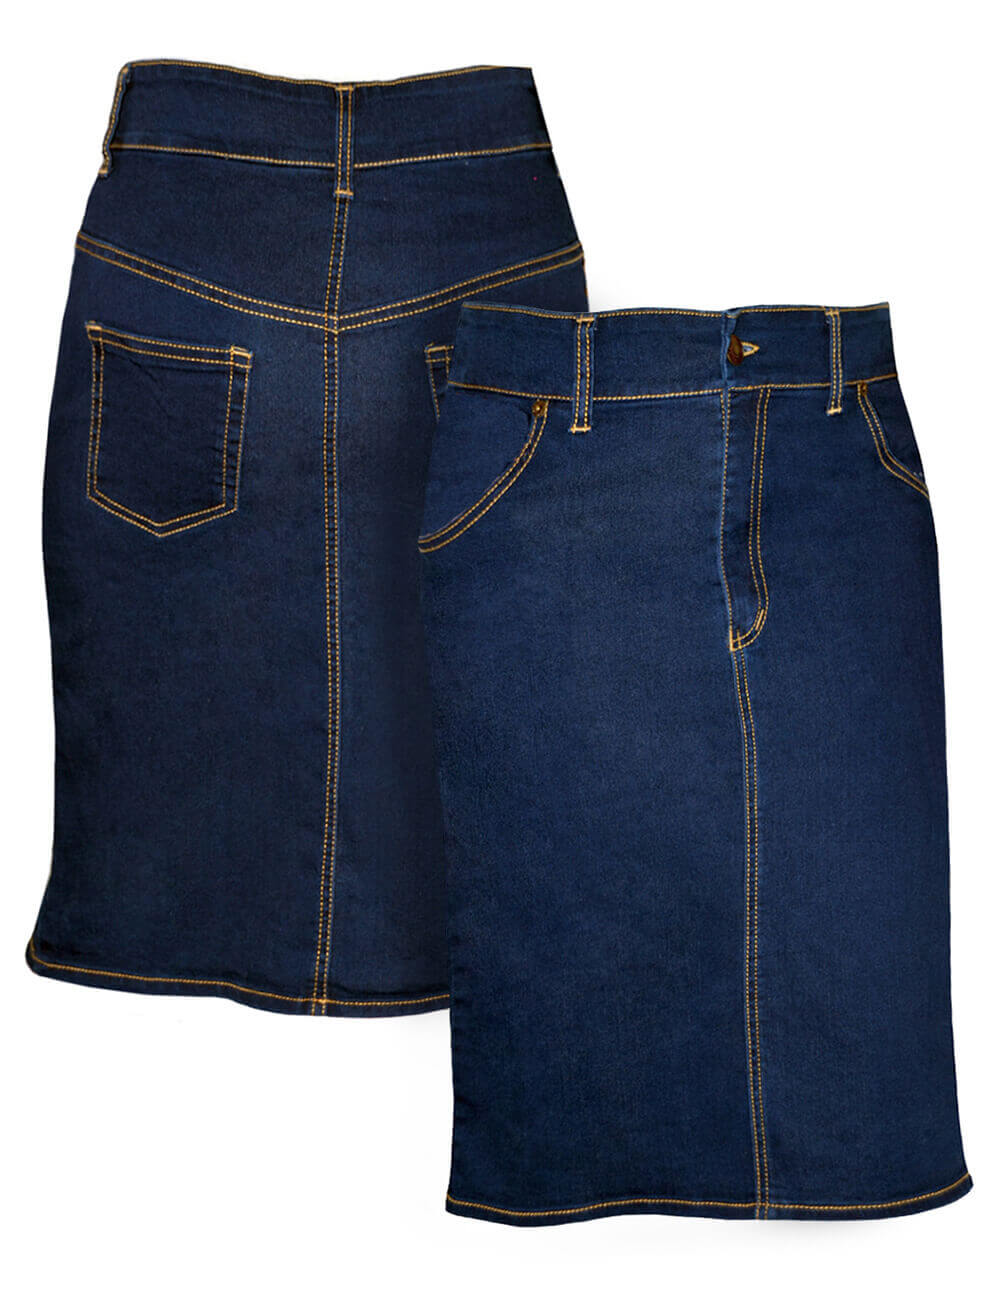 Girls' Denim Pencil Skirt Knee Length - Classic-Styling